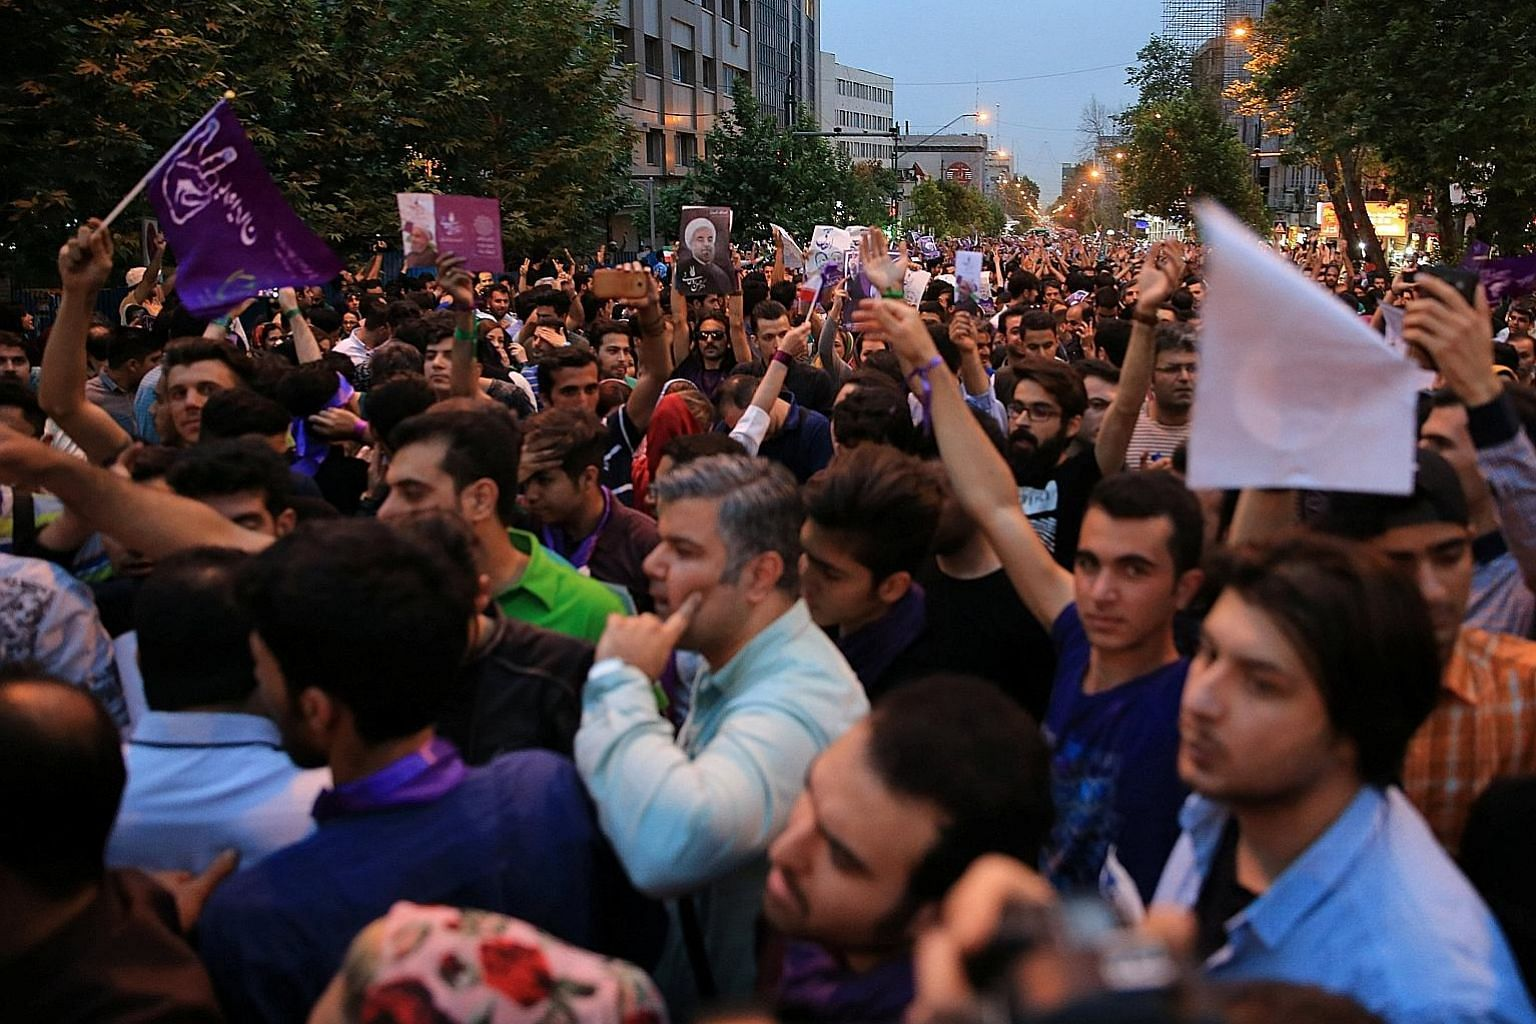 Supporters of Iranian President Hassan Rouhani took to the streets of Teheran last Saturday to celebrate his victory. The cleric, who was first elected in 2013, won 57 per cent of the vote in the presidential election last Friday.